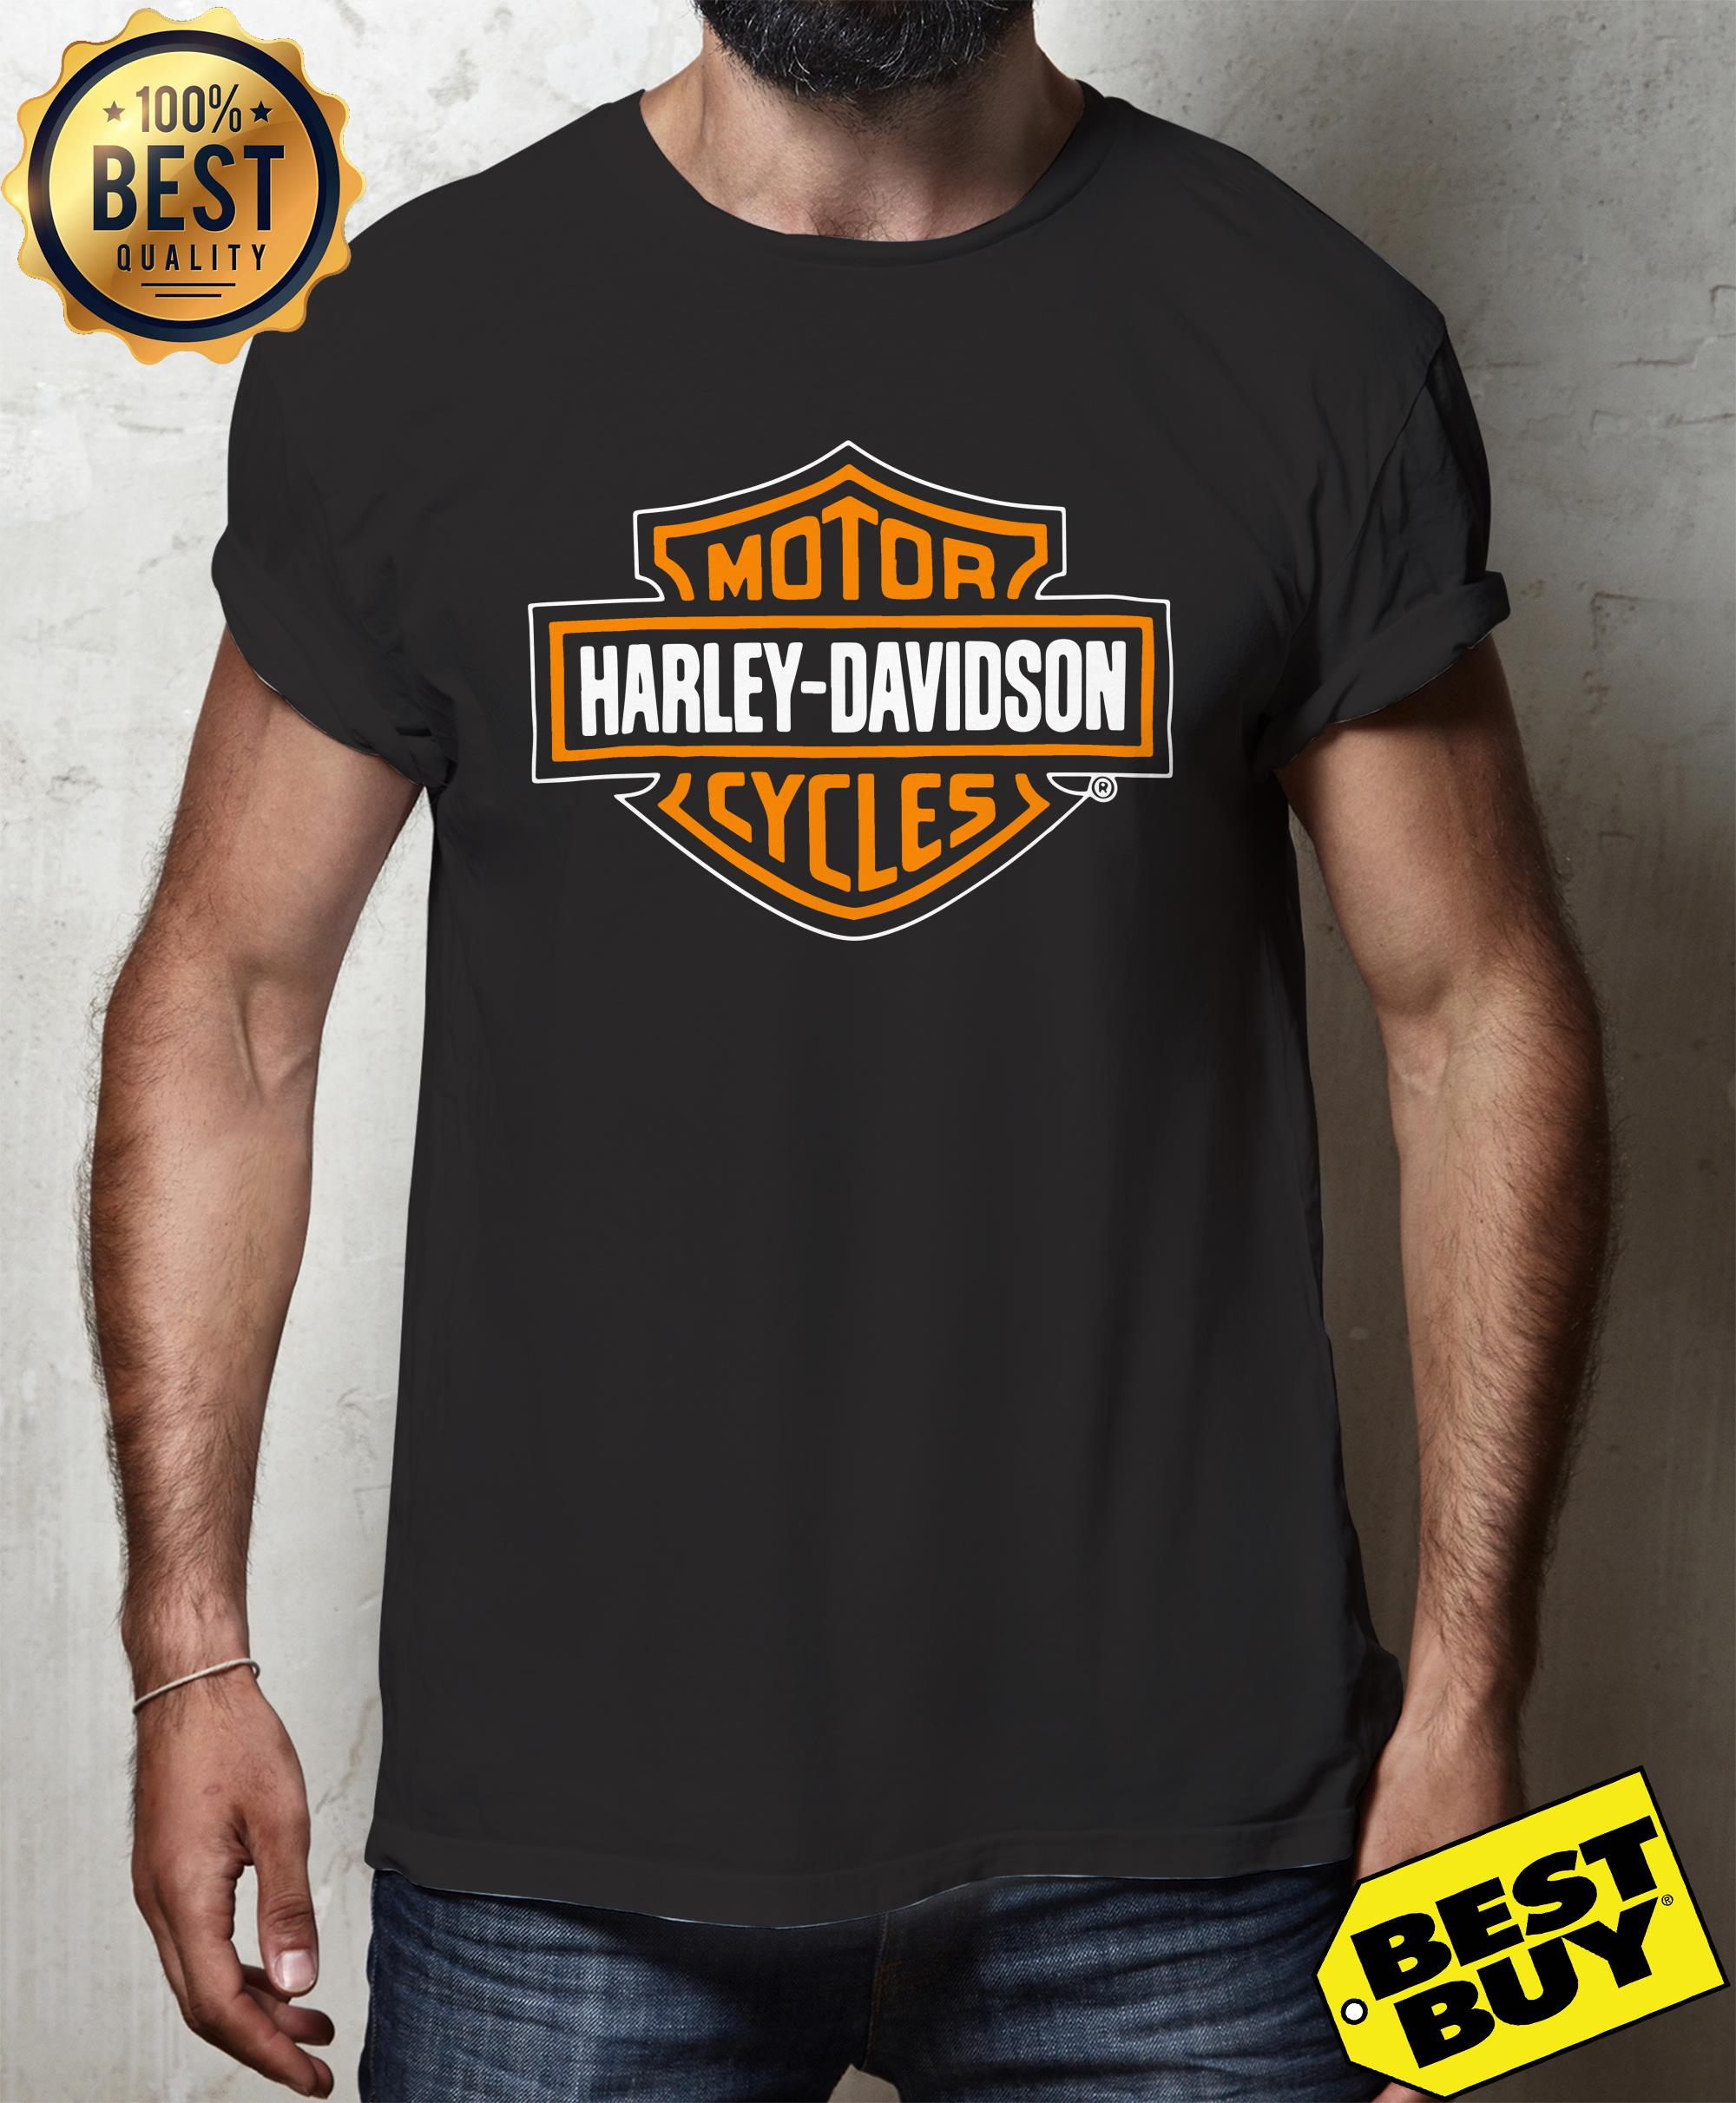 Motor Harley Davidson cycles shirt